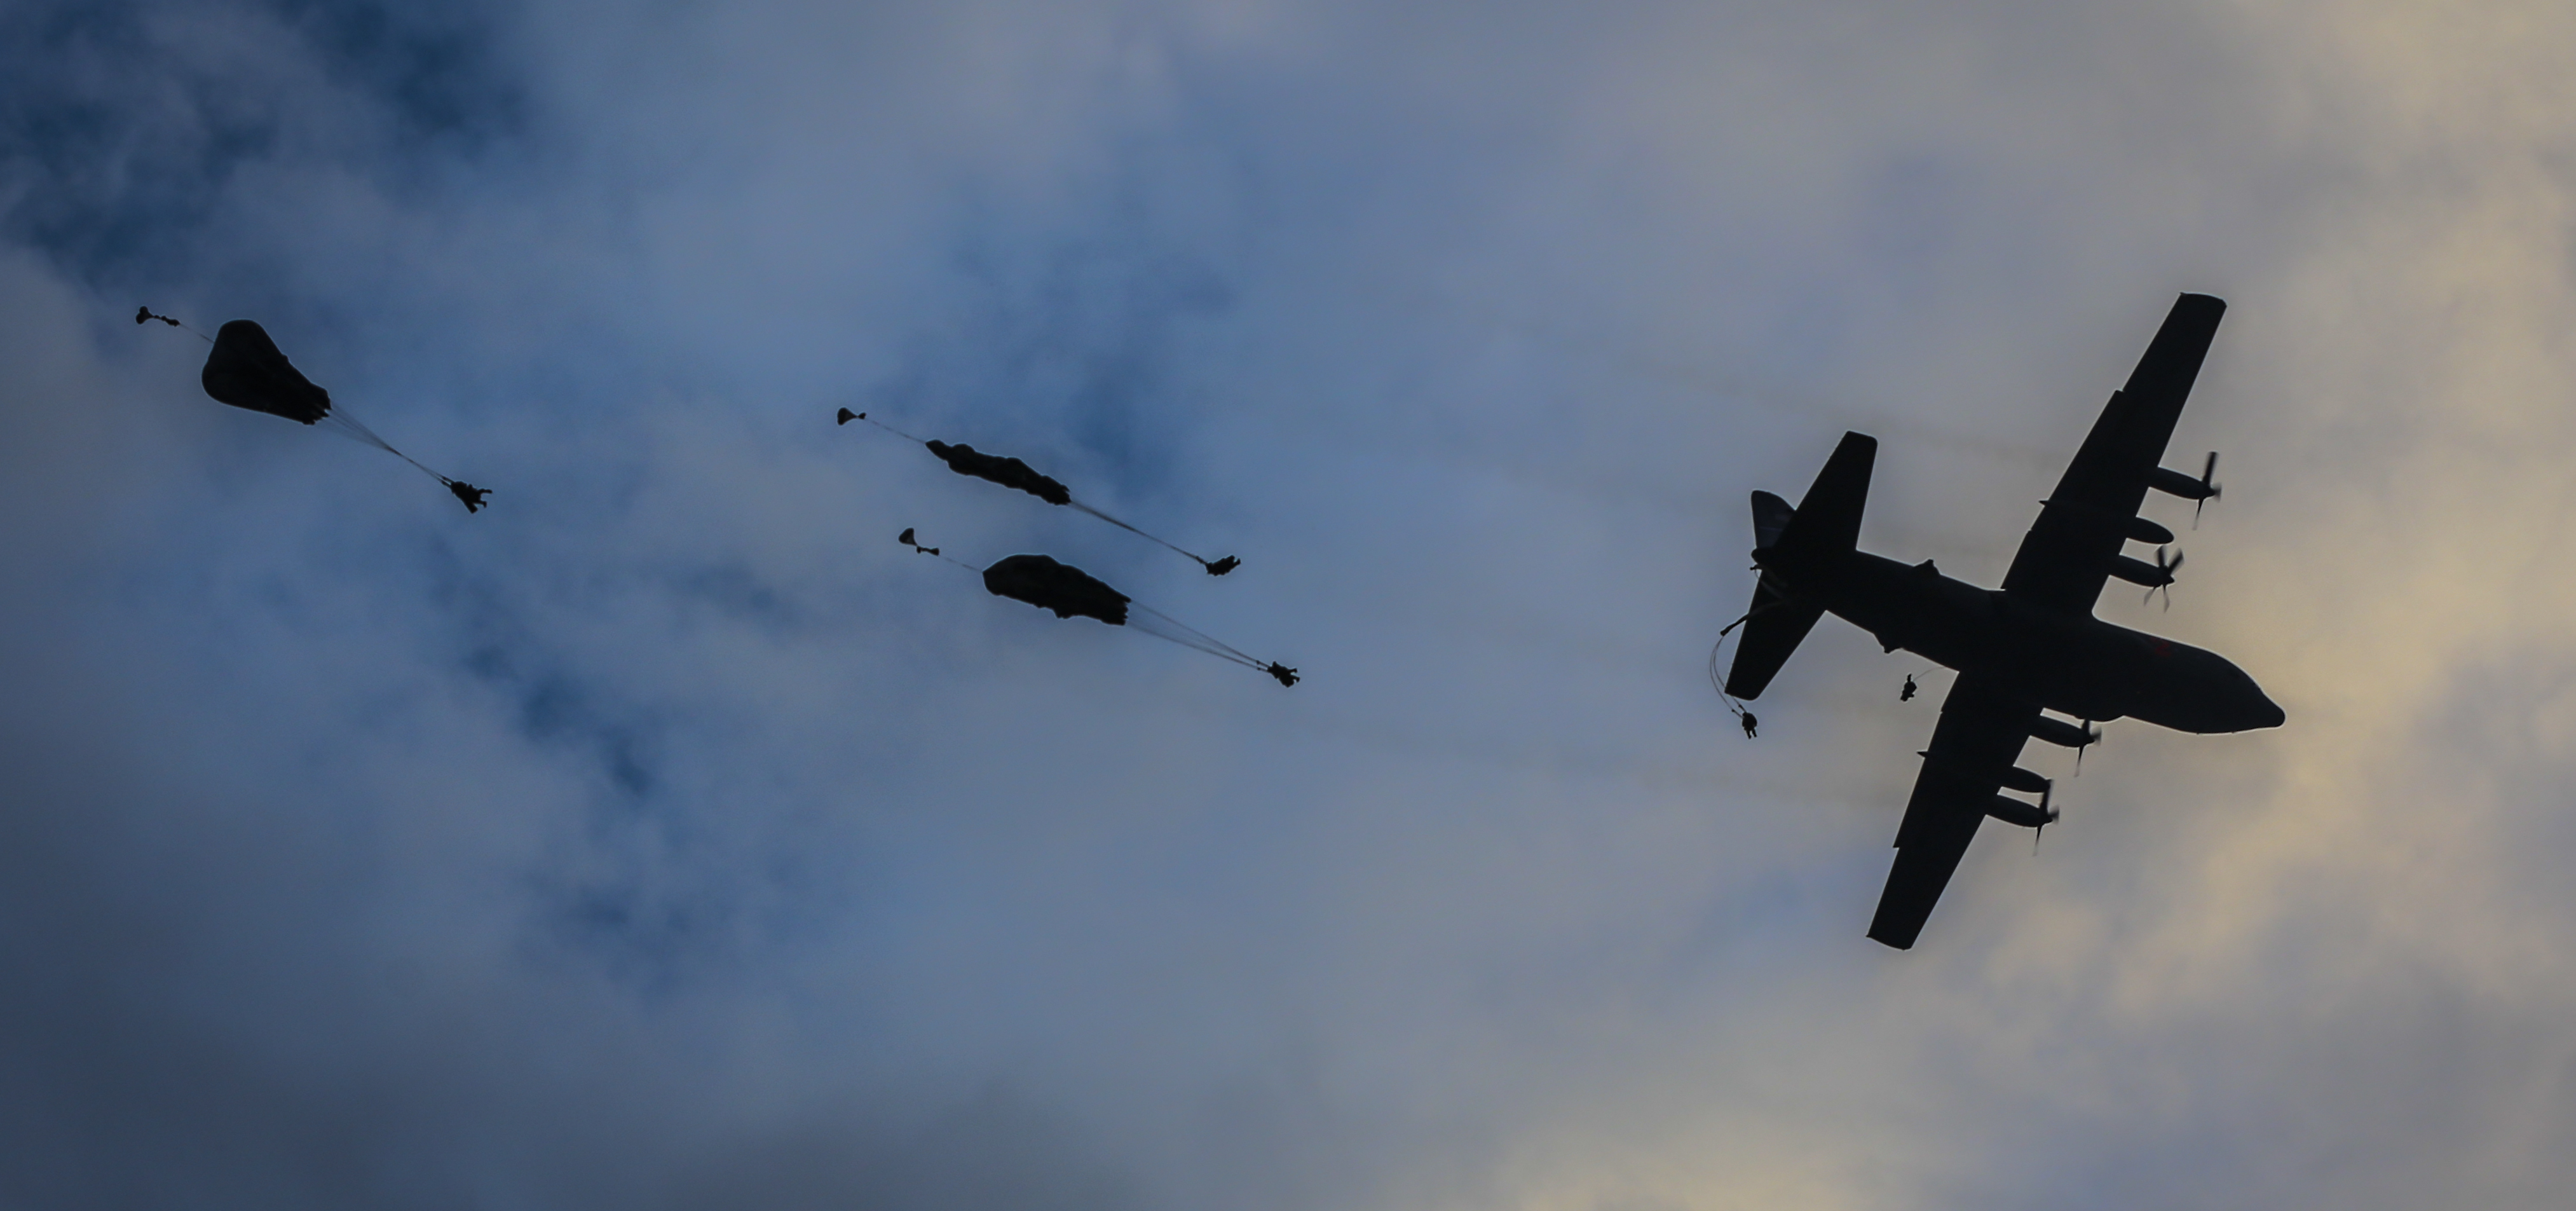 Paratroopers night